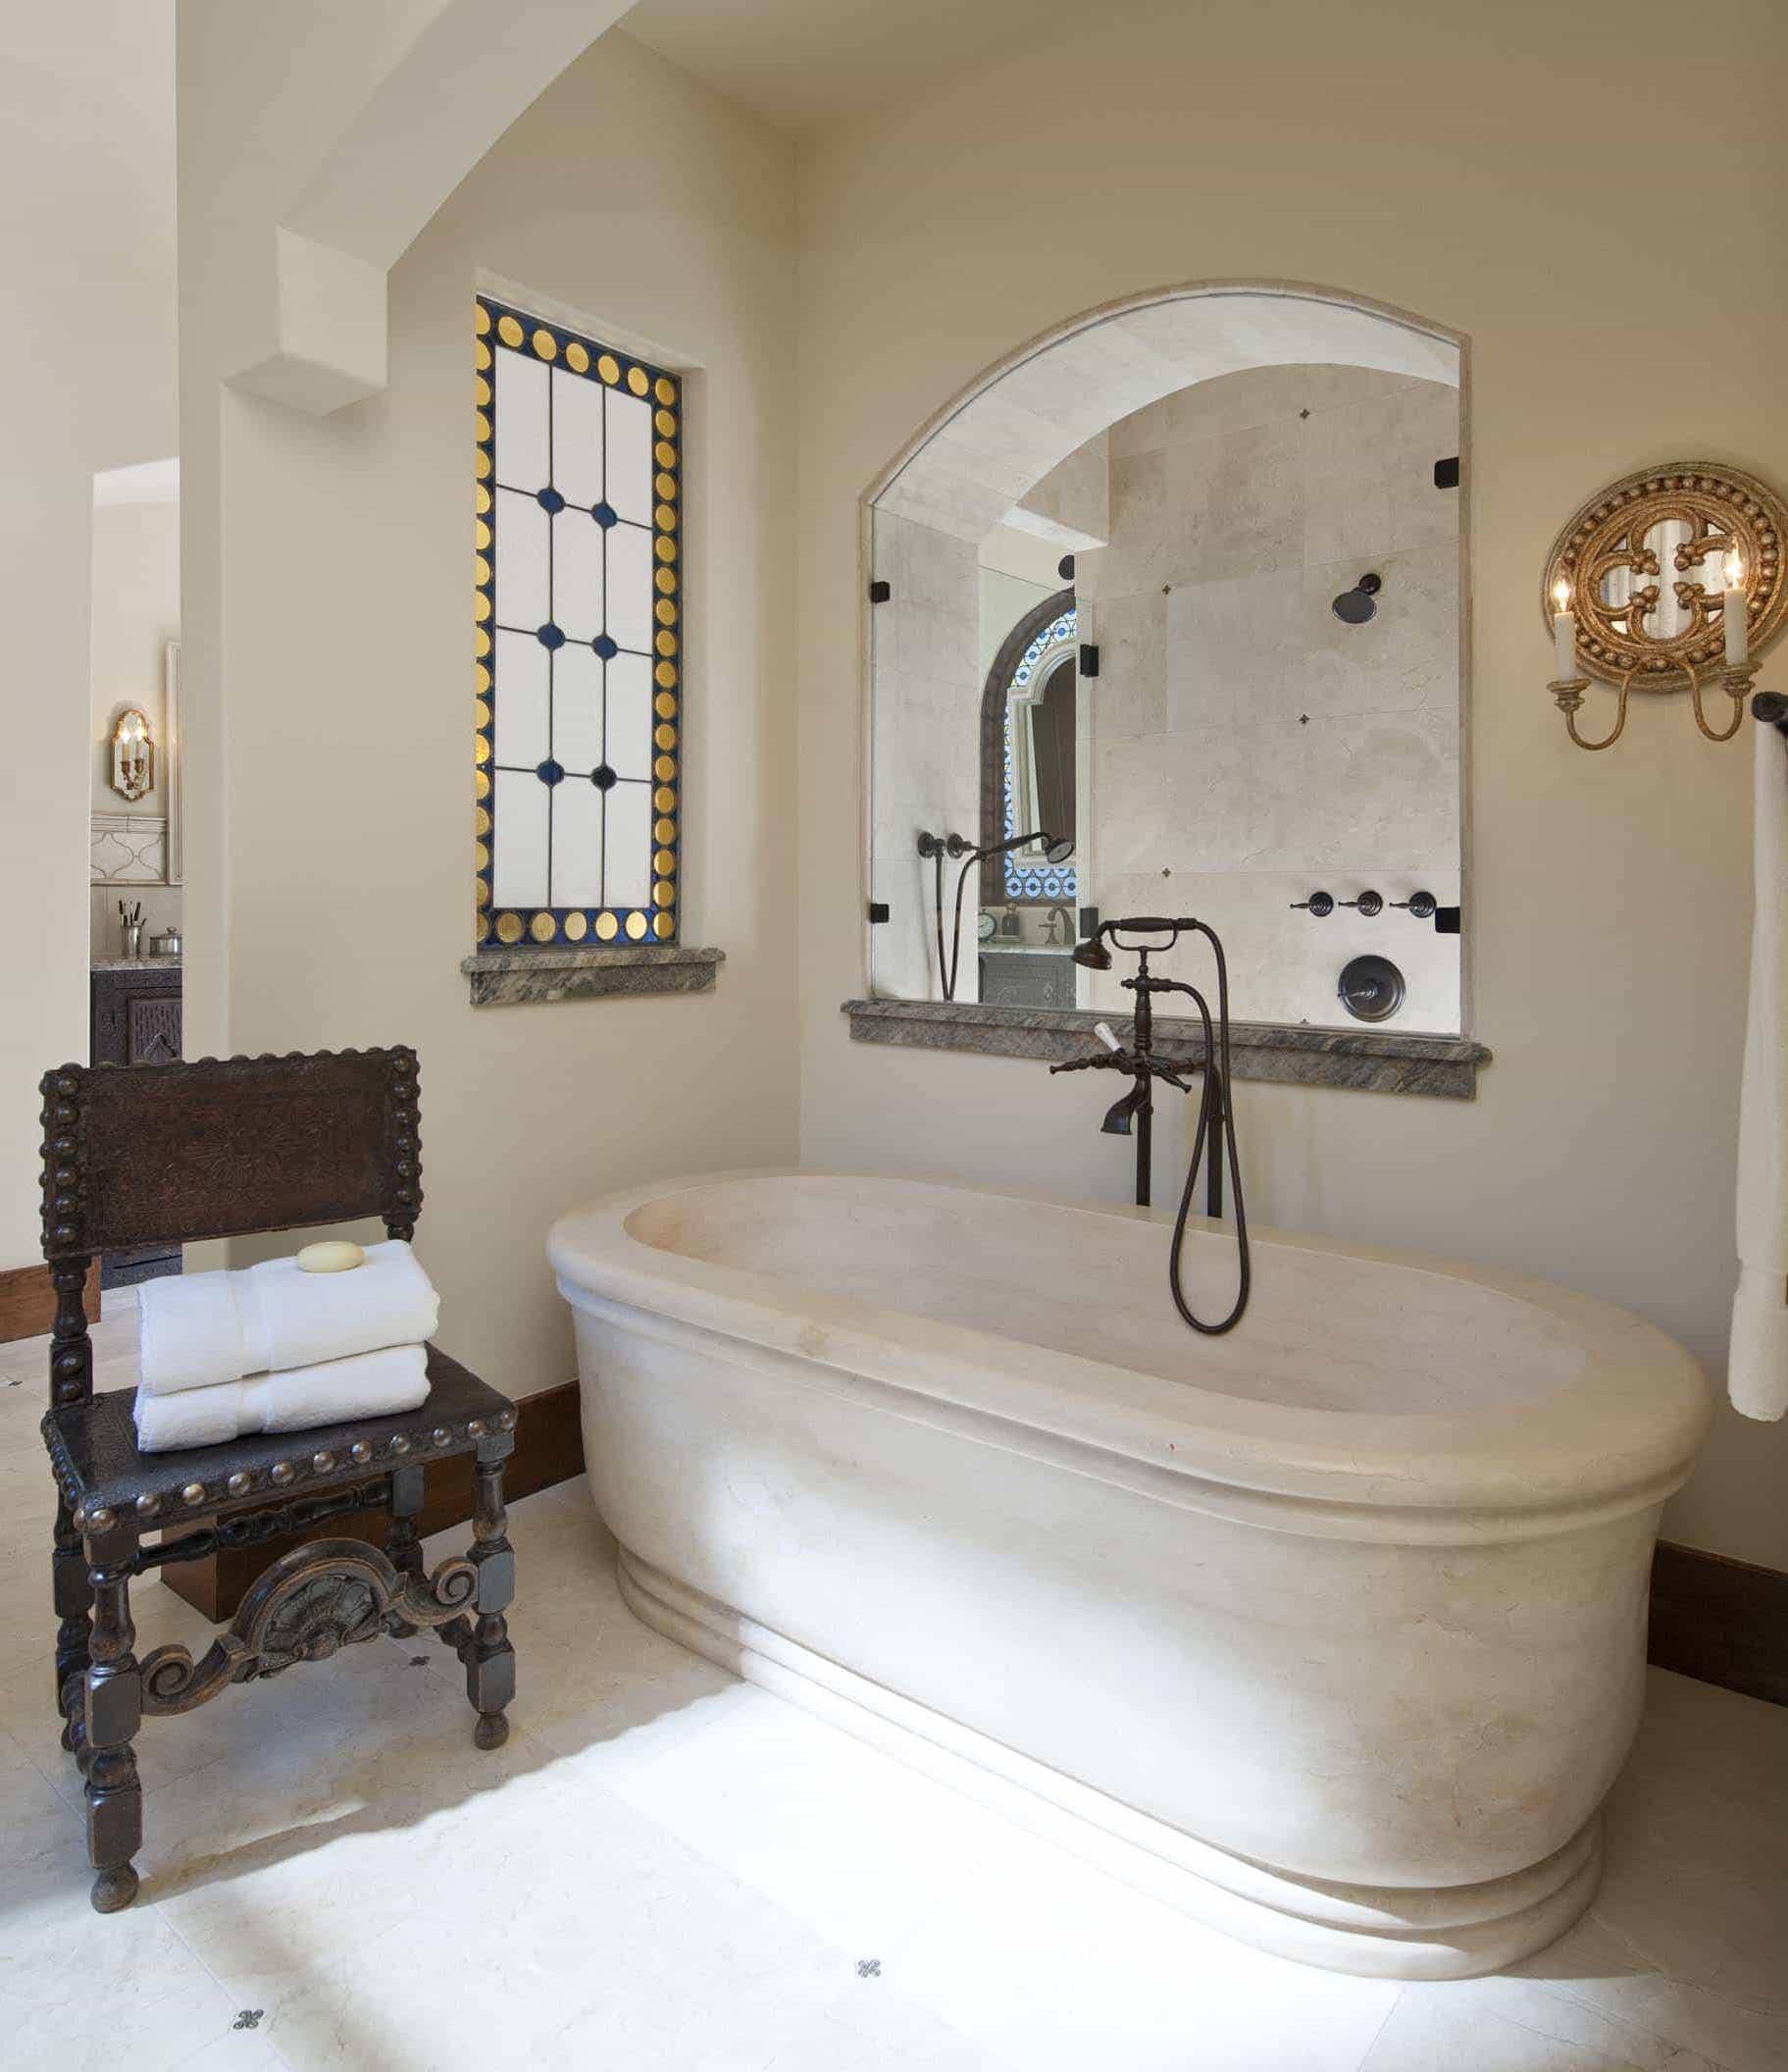 Timeless Stone Bathtub In Mexican Master Bathroom (Image 8 of 10)